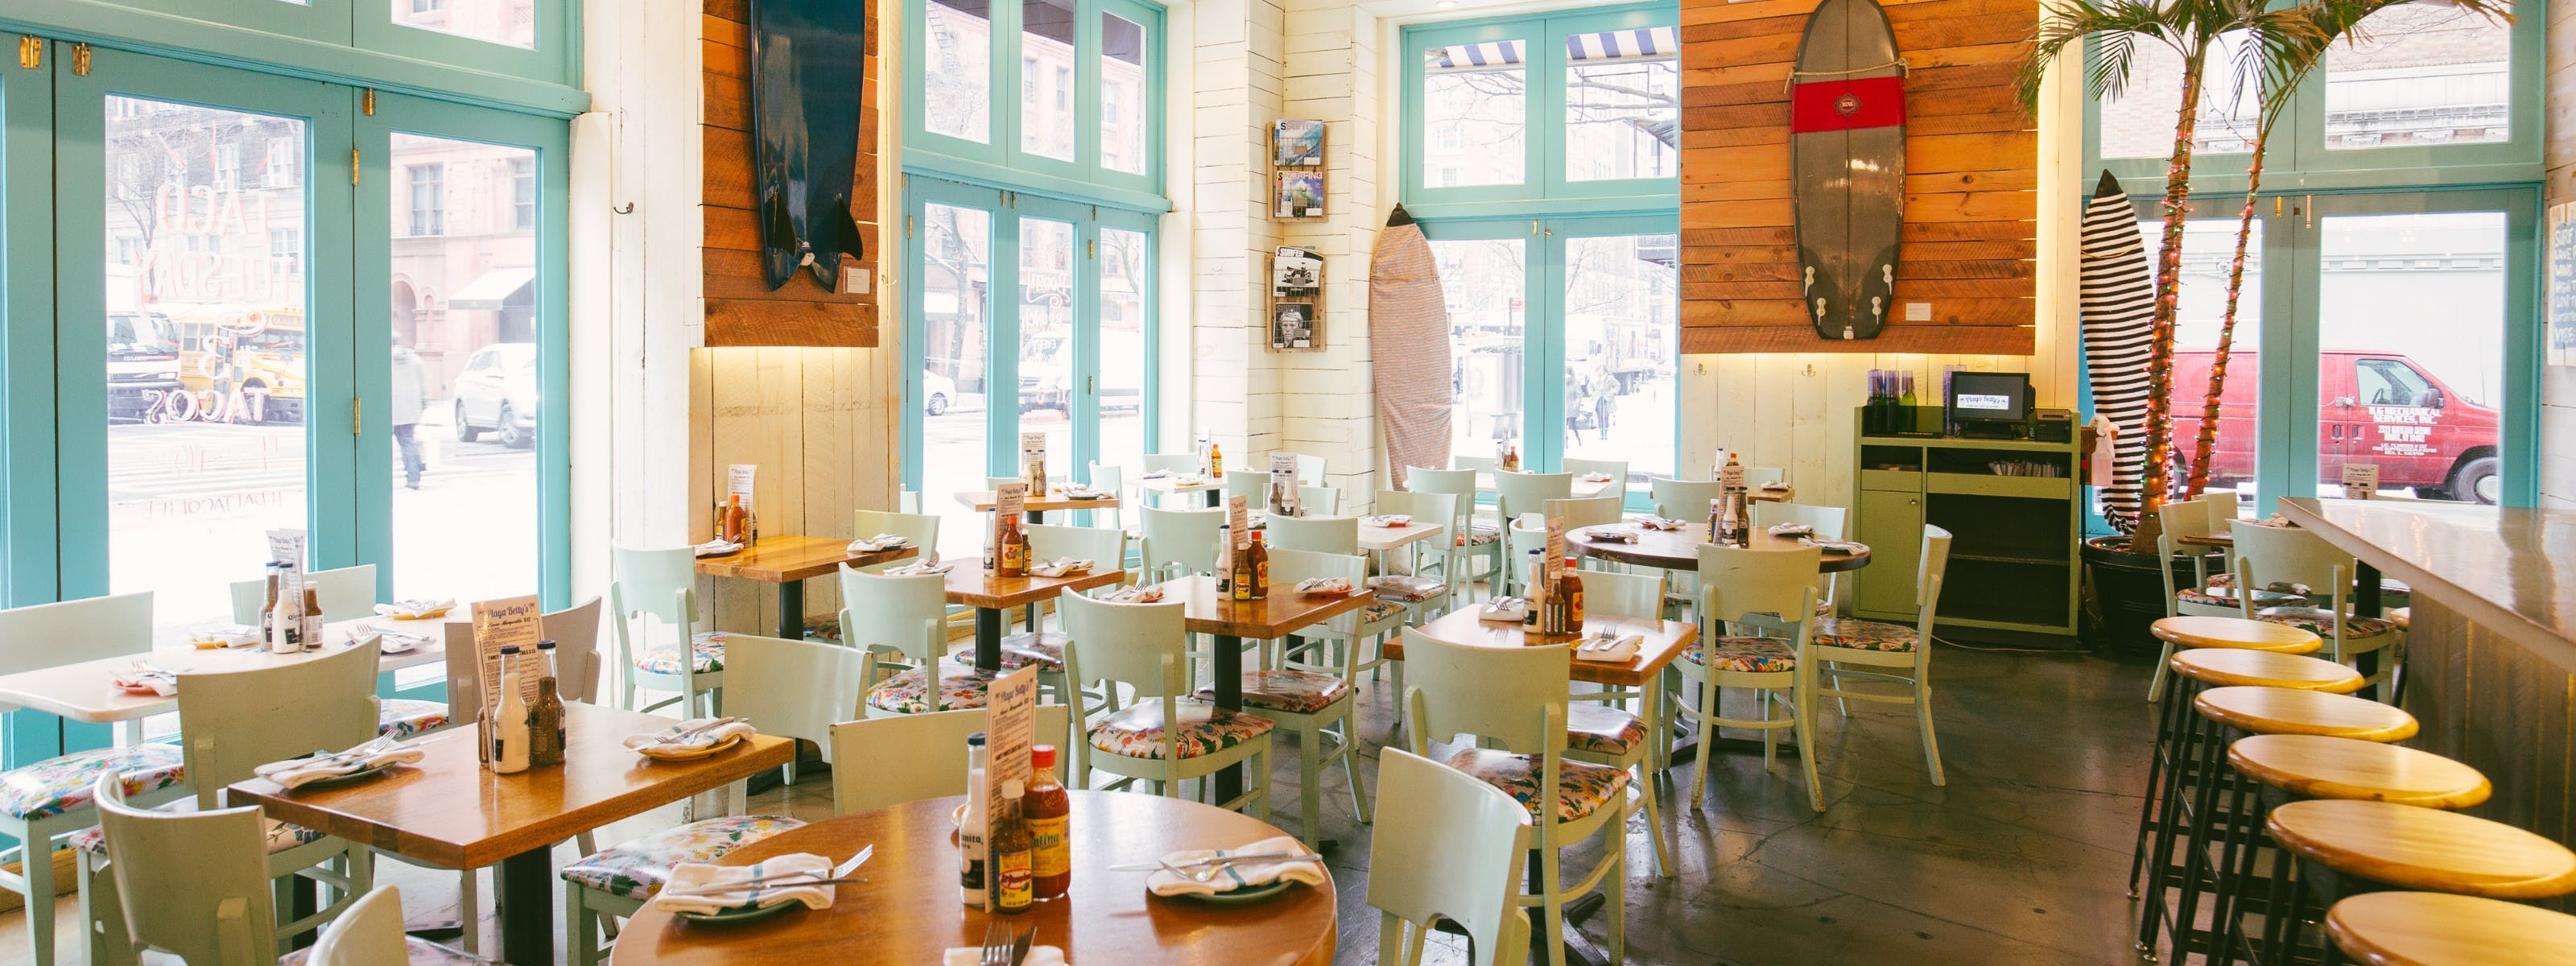 The Best Restaurants For Affordable Group Dinners New York The Infatuation